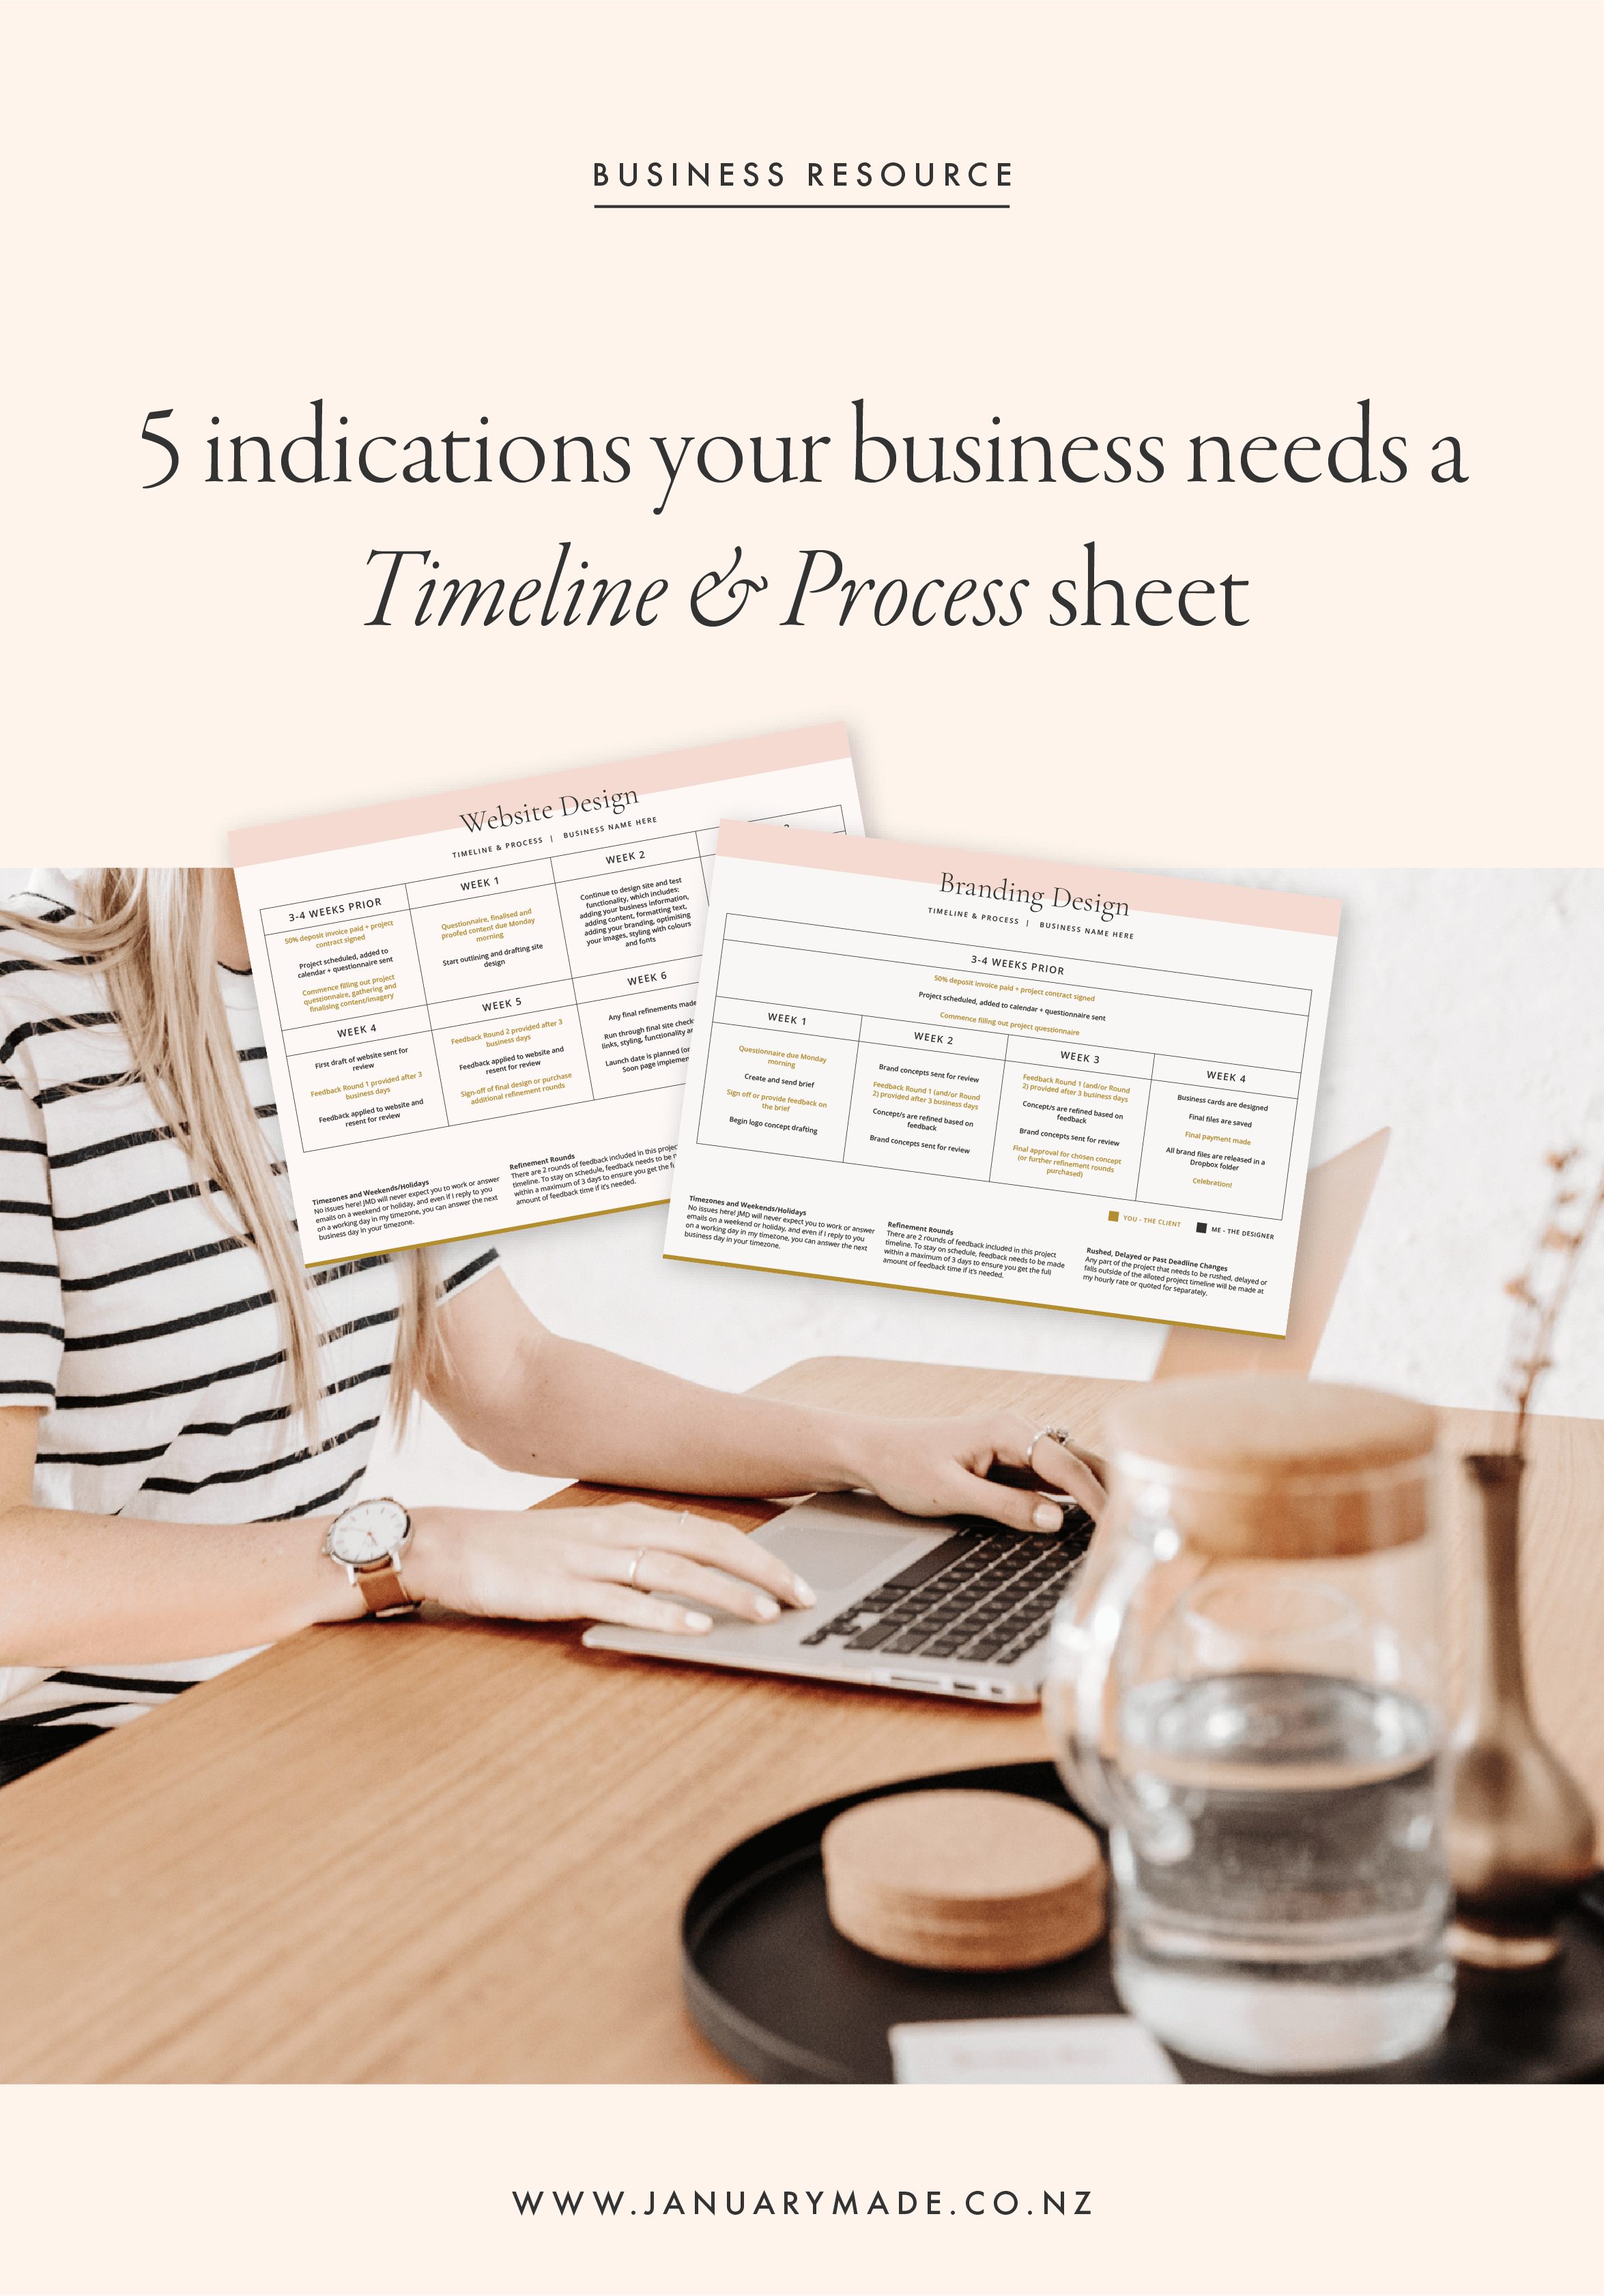 5 indications your business needs a Timeline & Process sheet